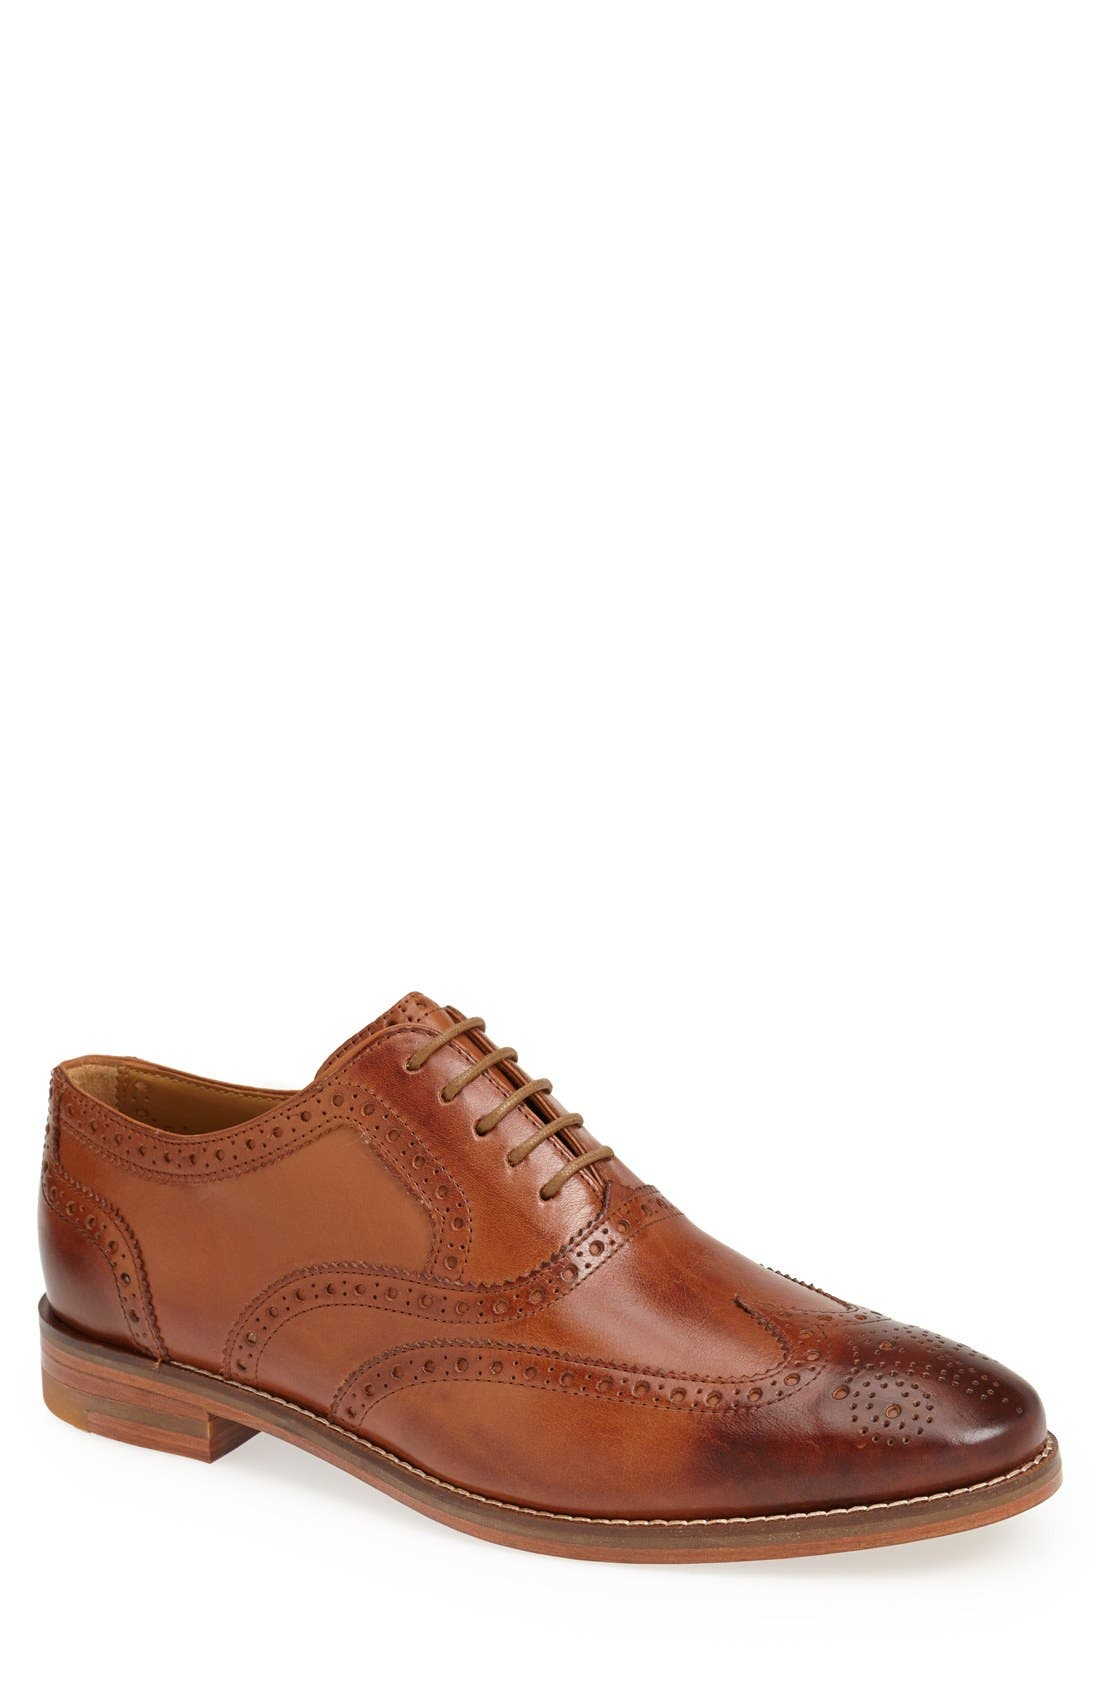 'Cambridge' Wingtip,                             Main thumbnail 1, color,                             British Tan Leather